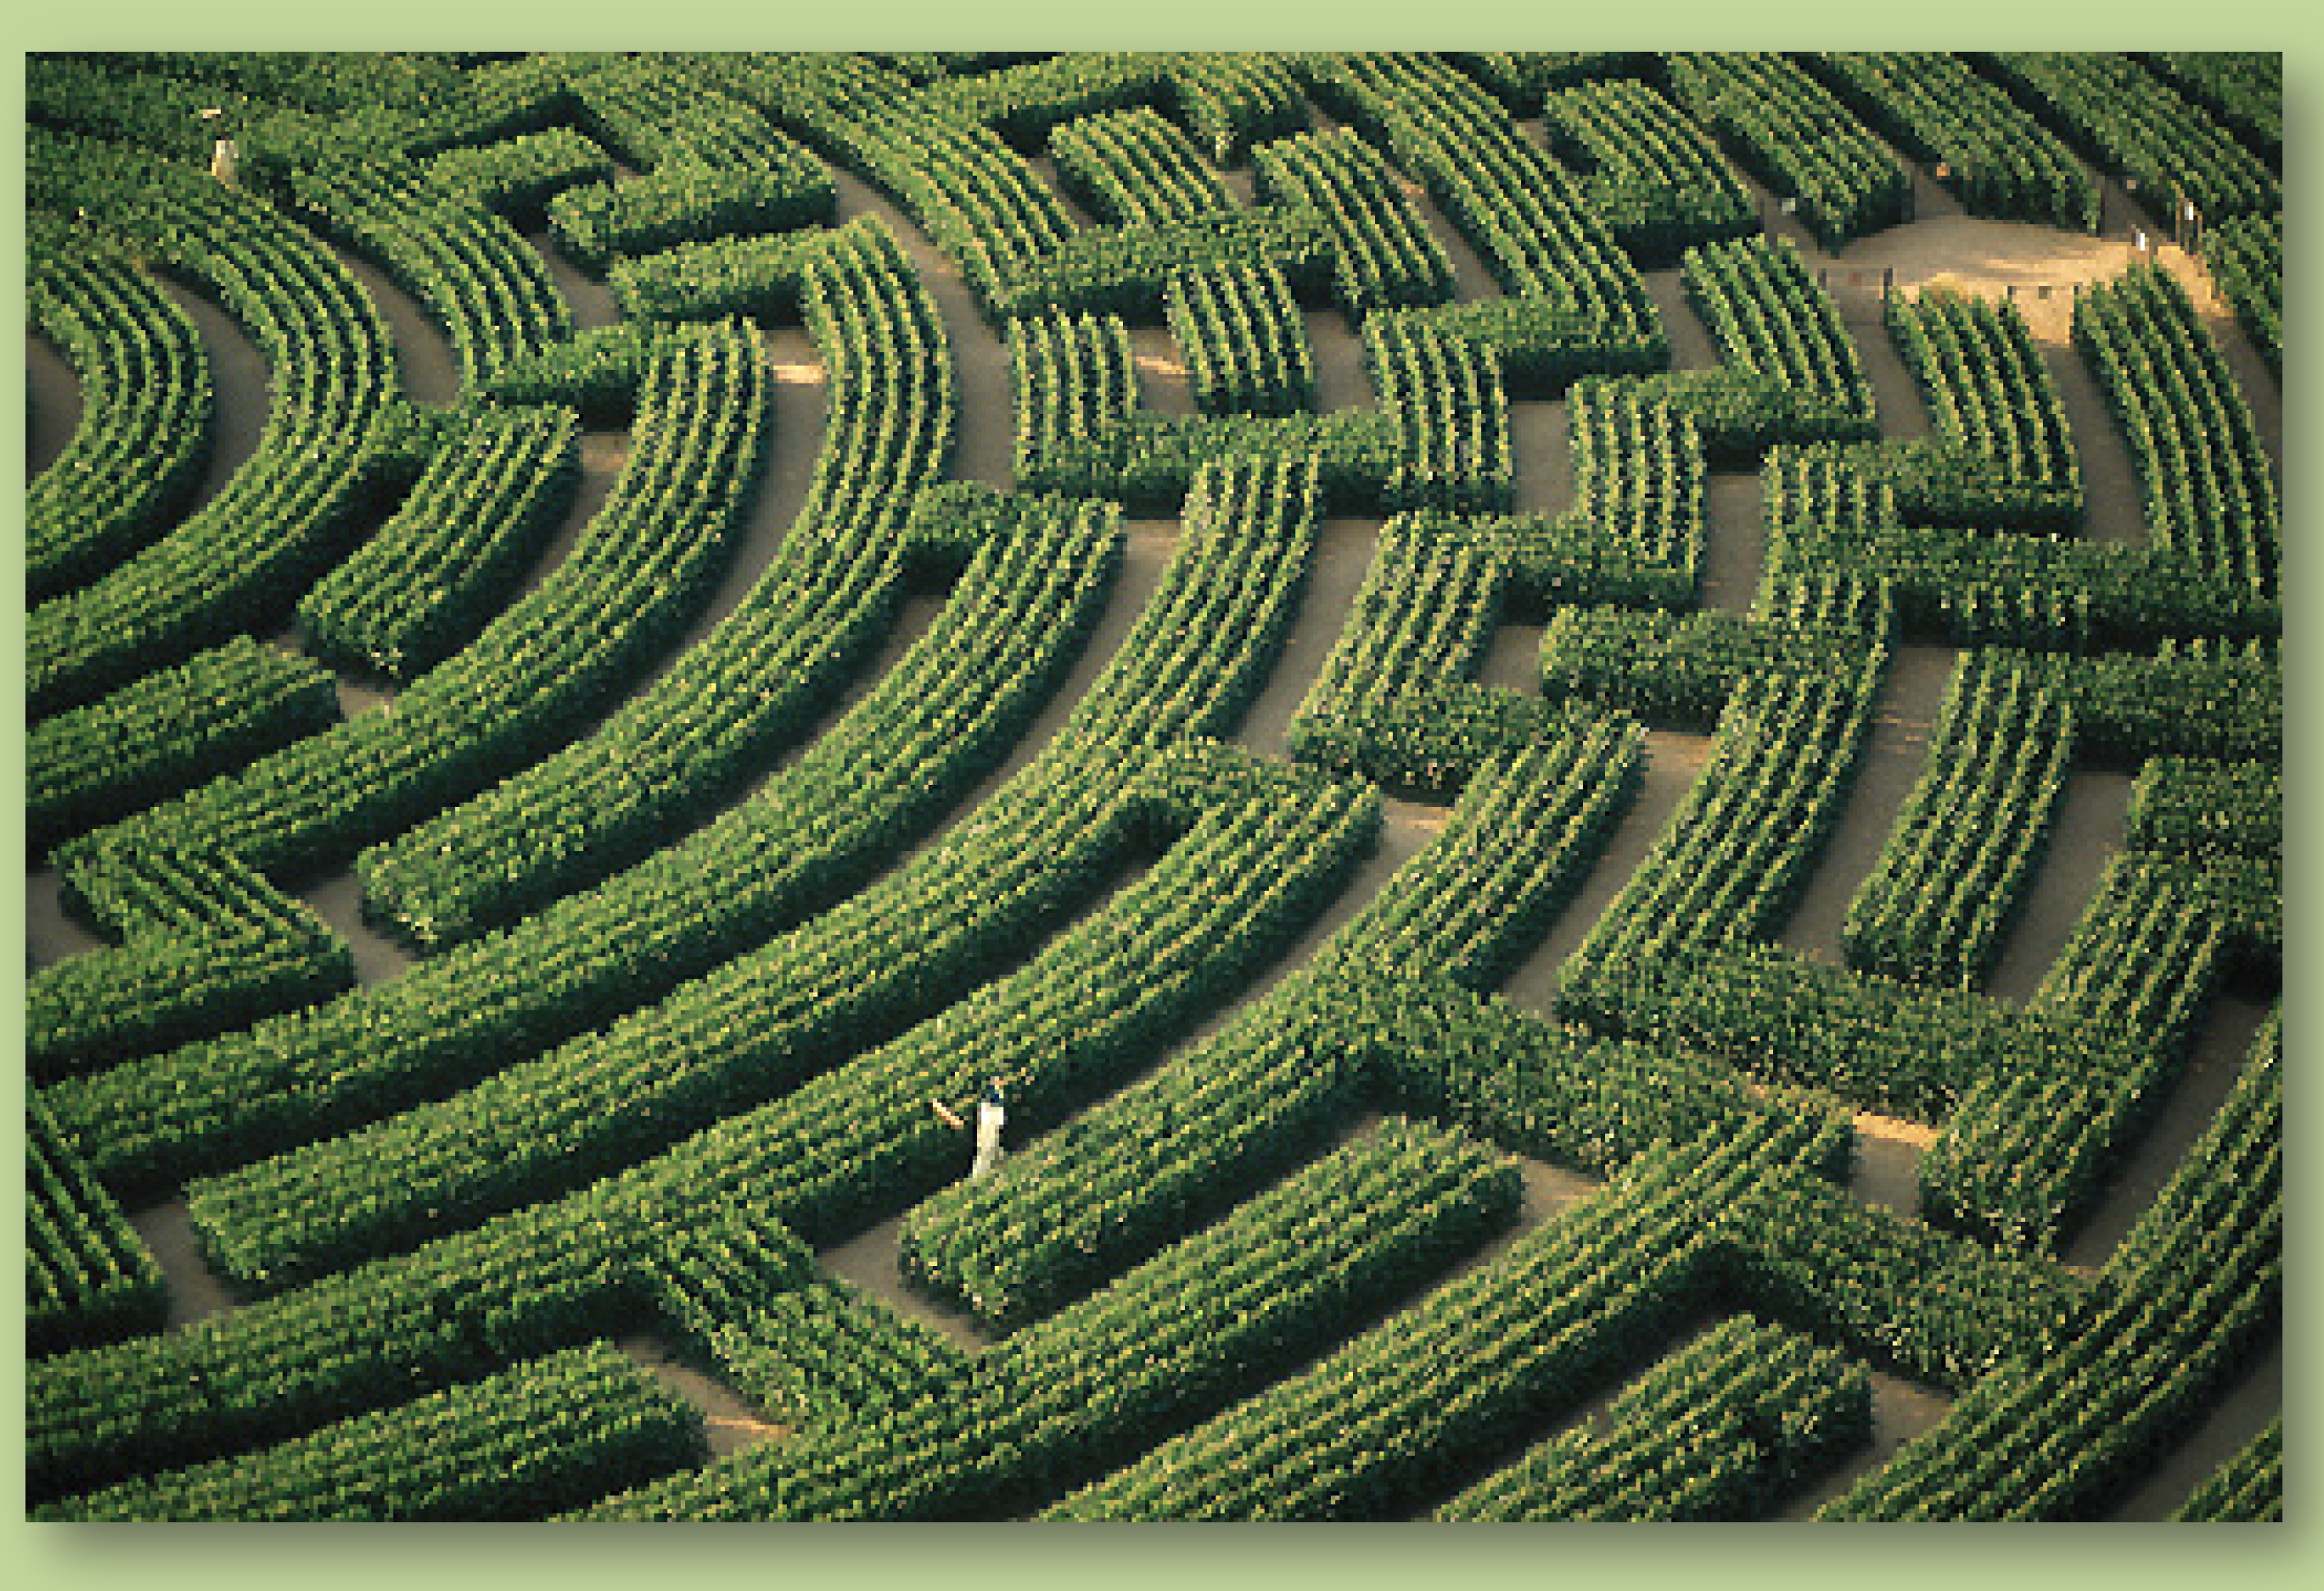 Michael Chaffee, The Maze